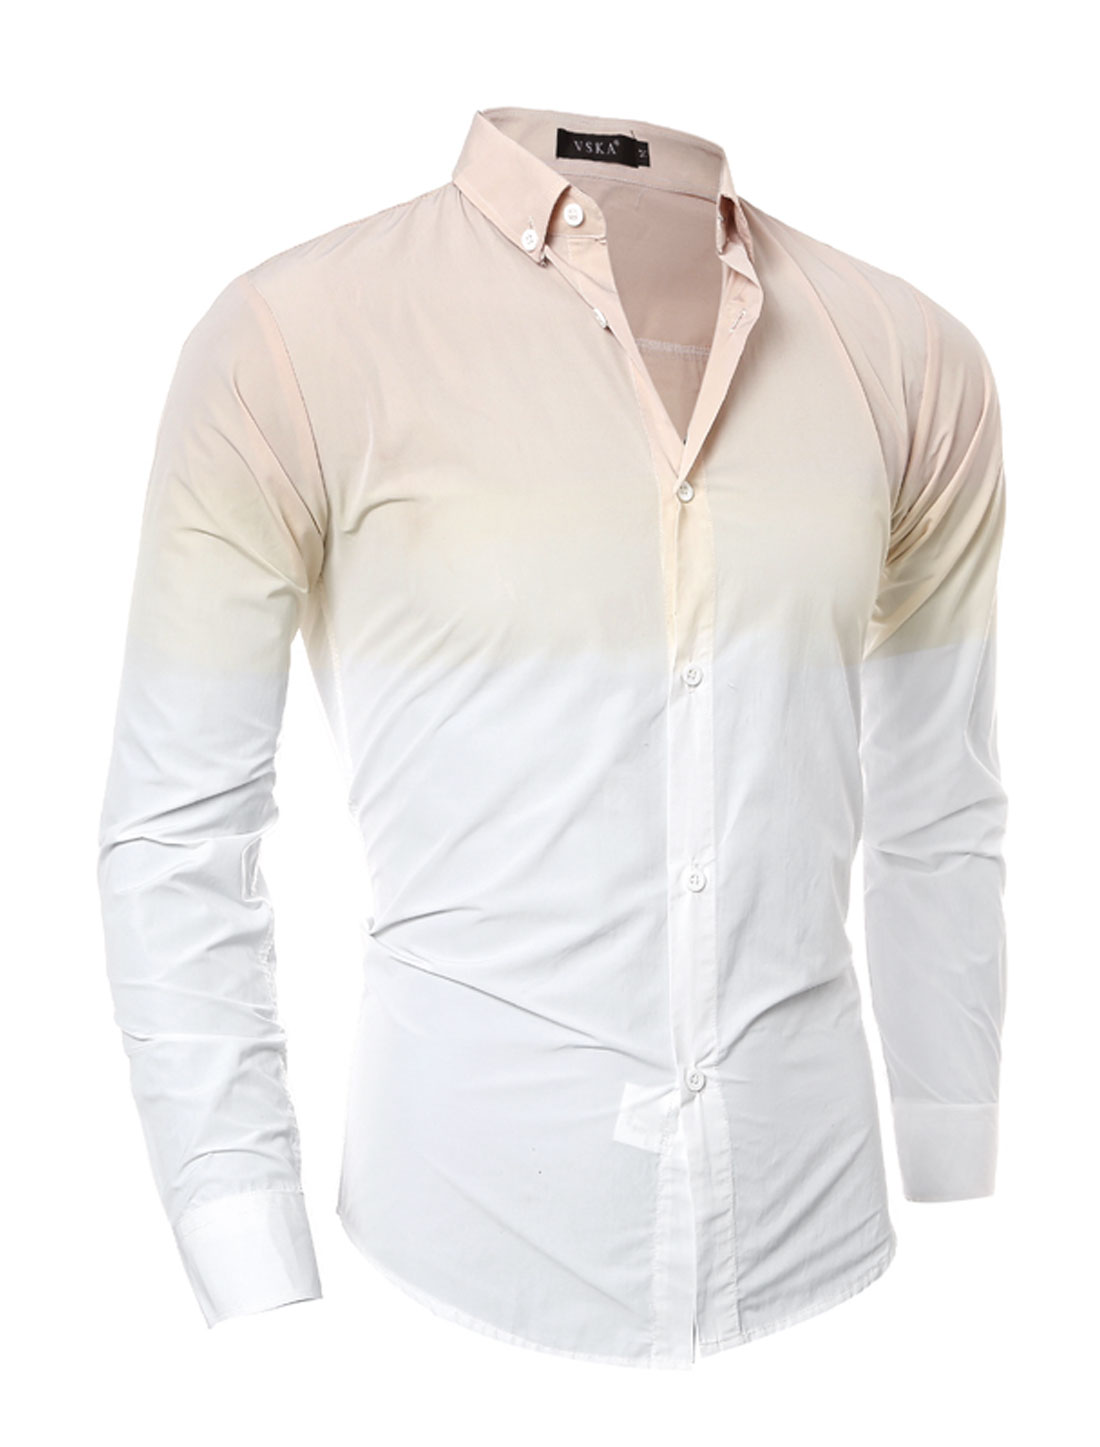 Man Dip-Dye Slim Fit Button Down Shirt Beige White S